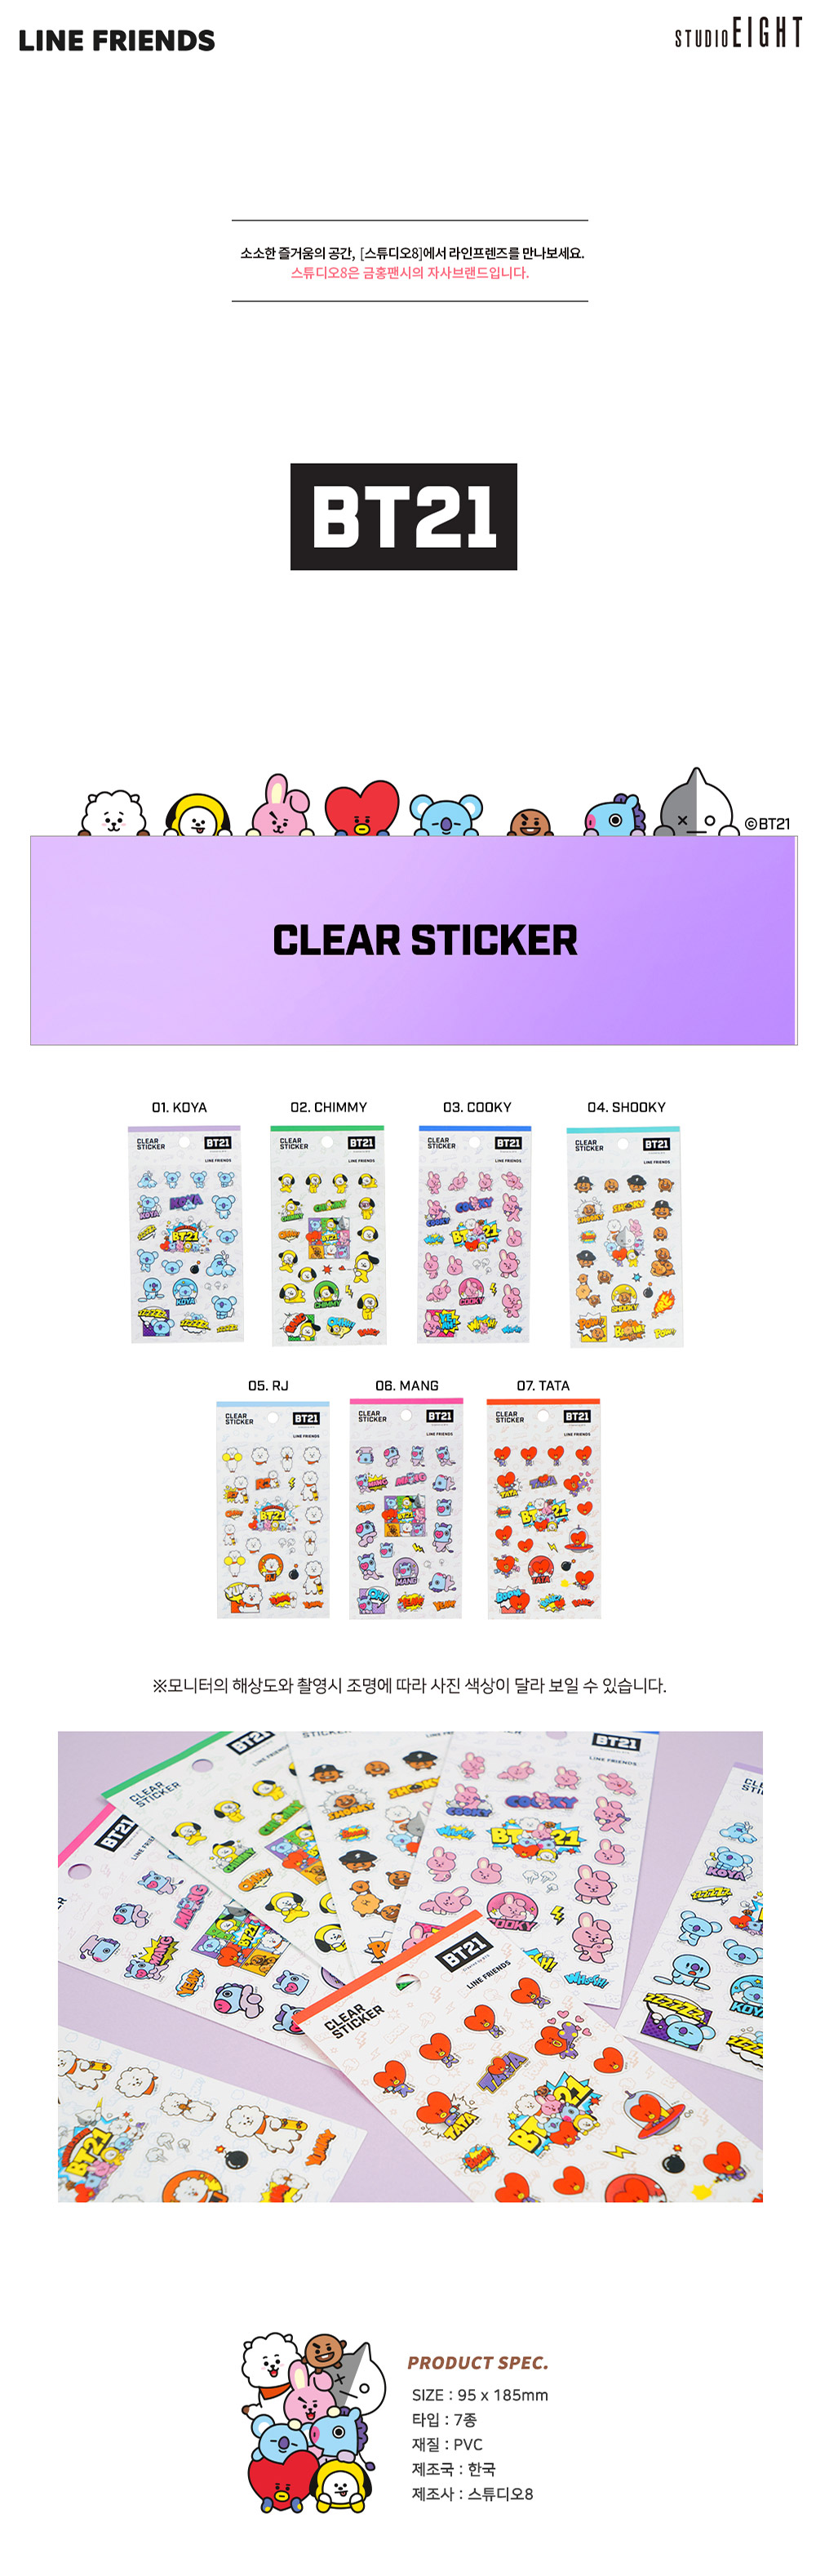 bt21_kh_clearstickerver2_01.jpg